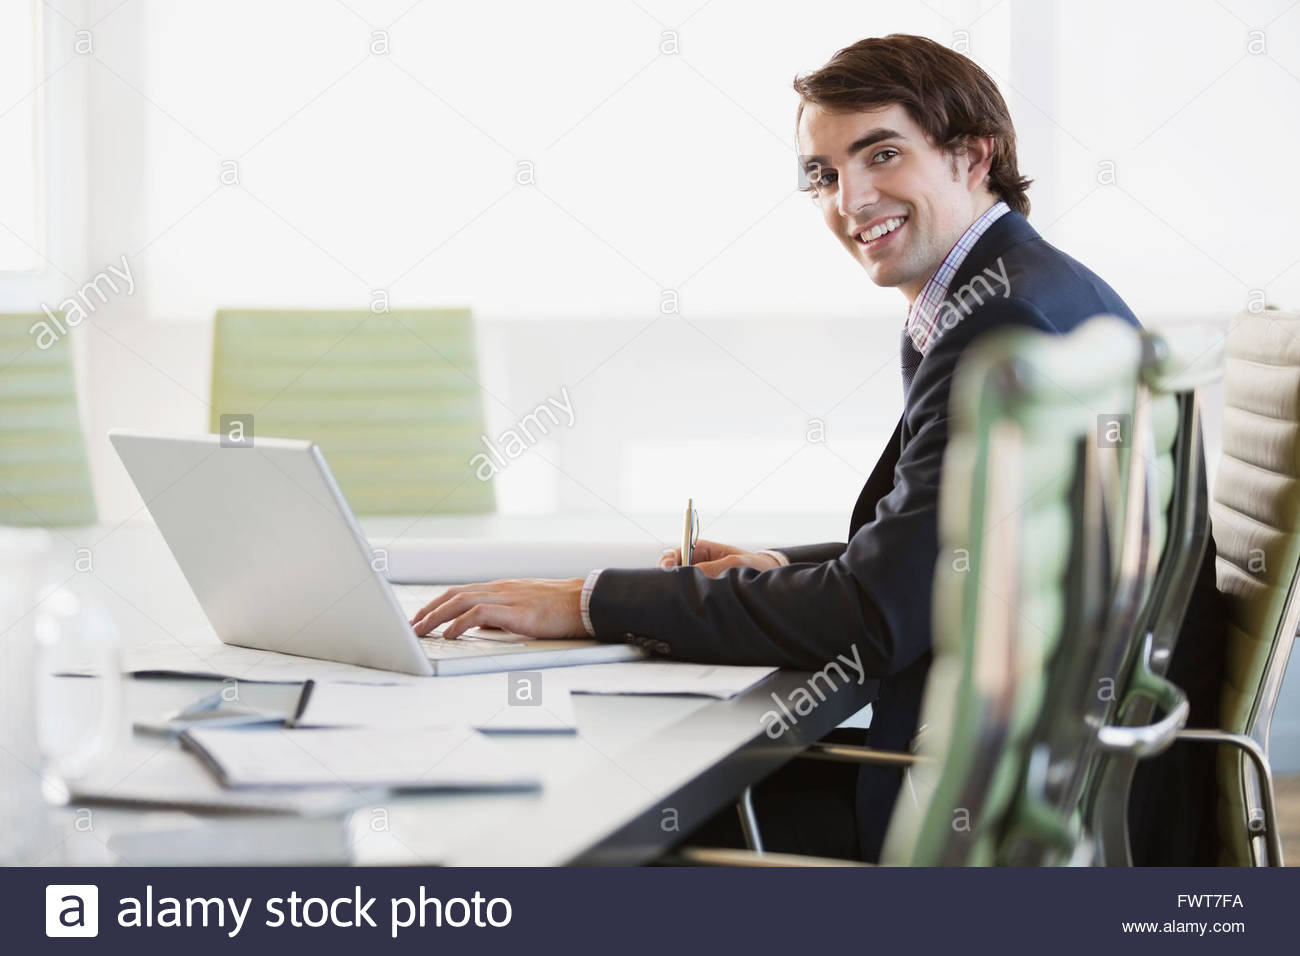 Portrait of young businessman sitting with laptop at conference table - Stock Image